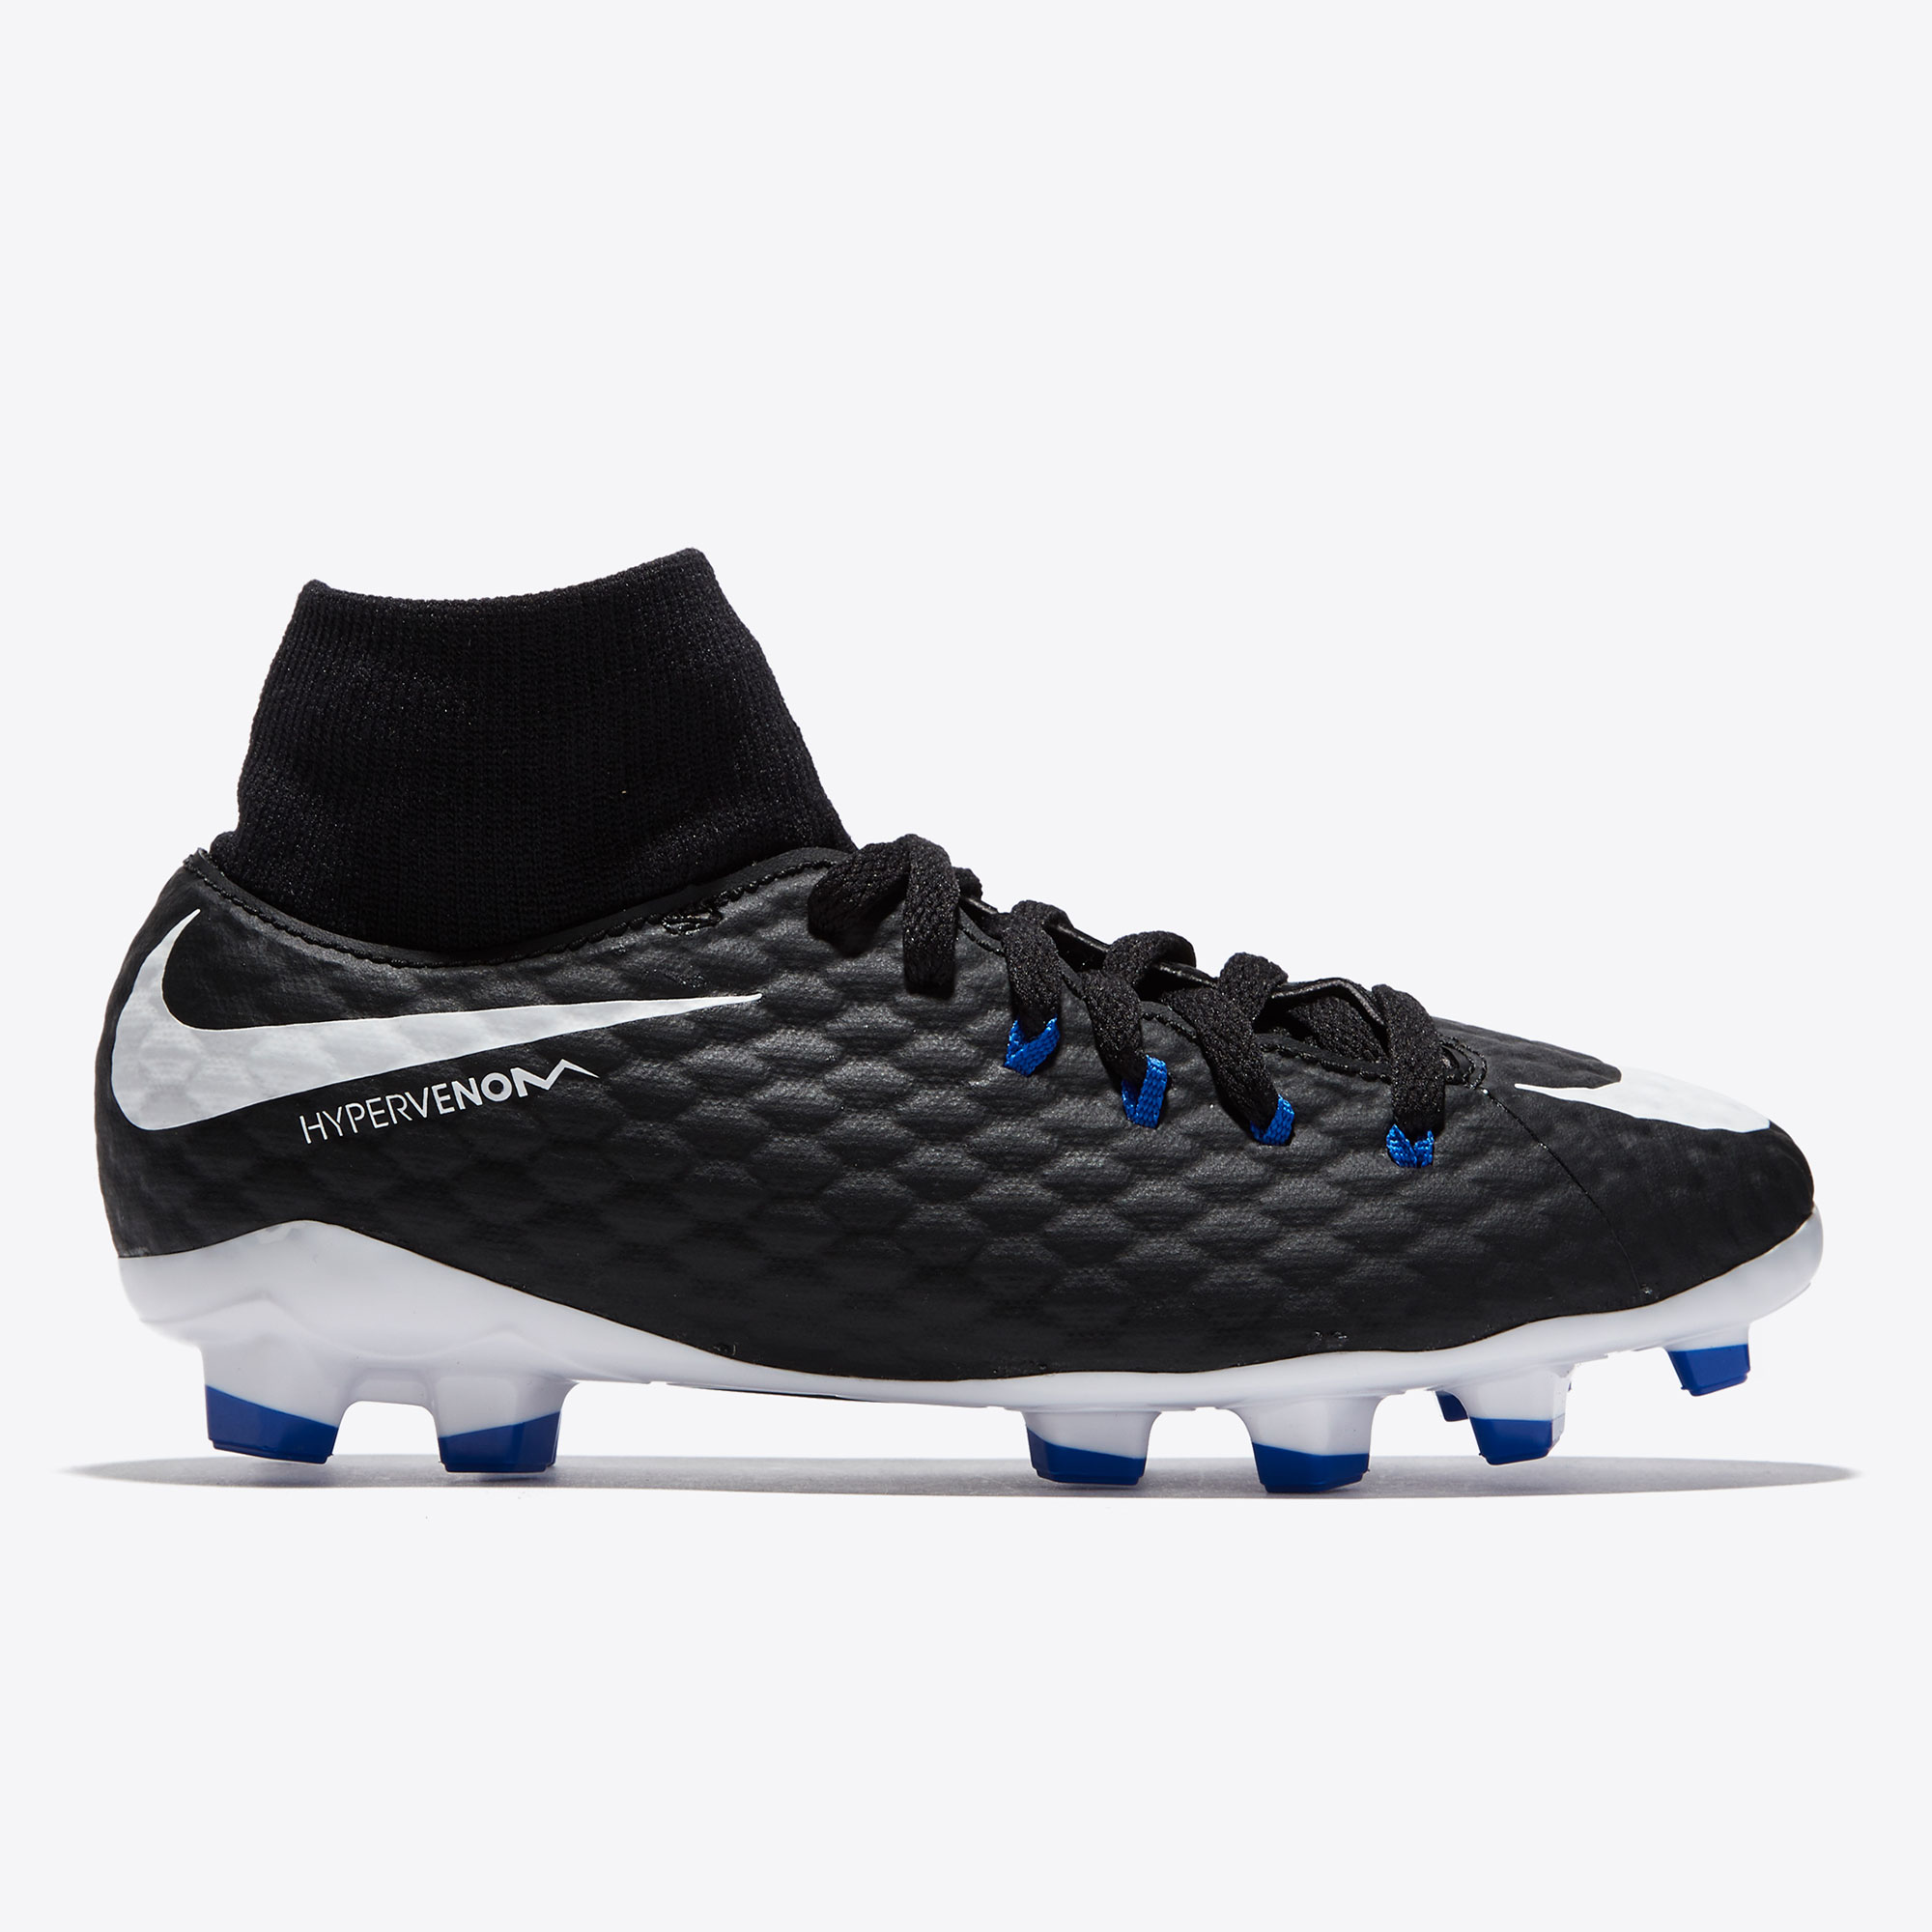 Nike Hypervenom Phelon III Dynamic Fit Firm Ground Football Boots - Bl